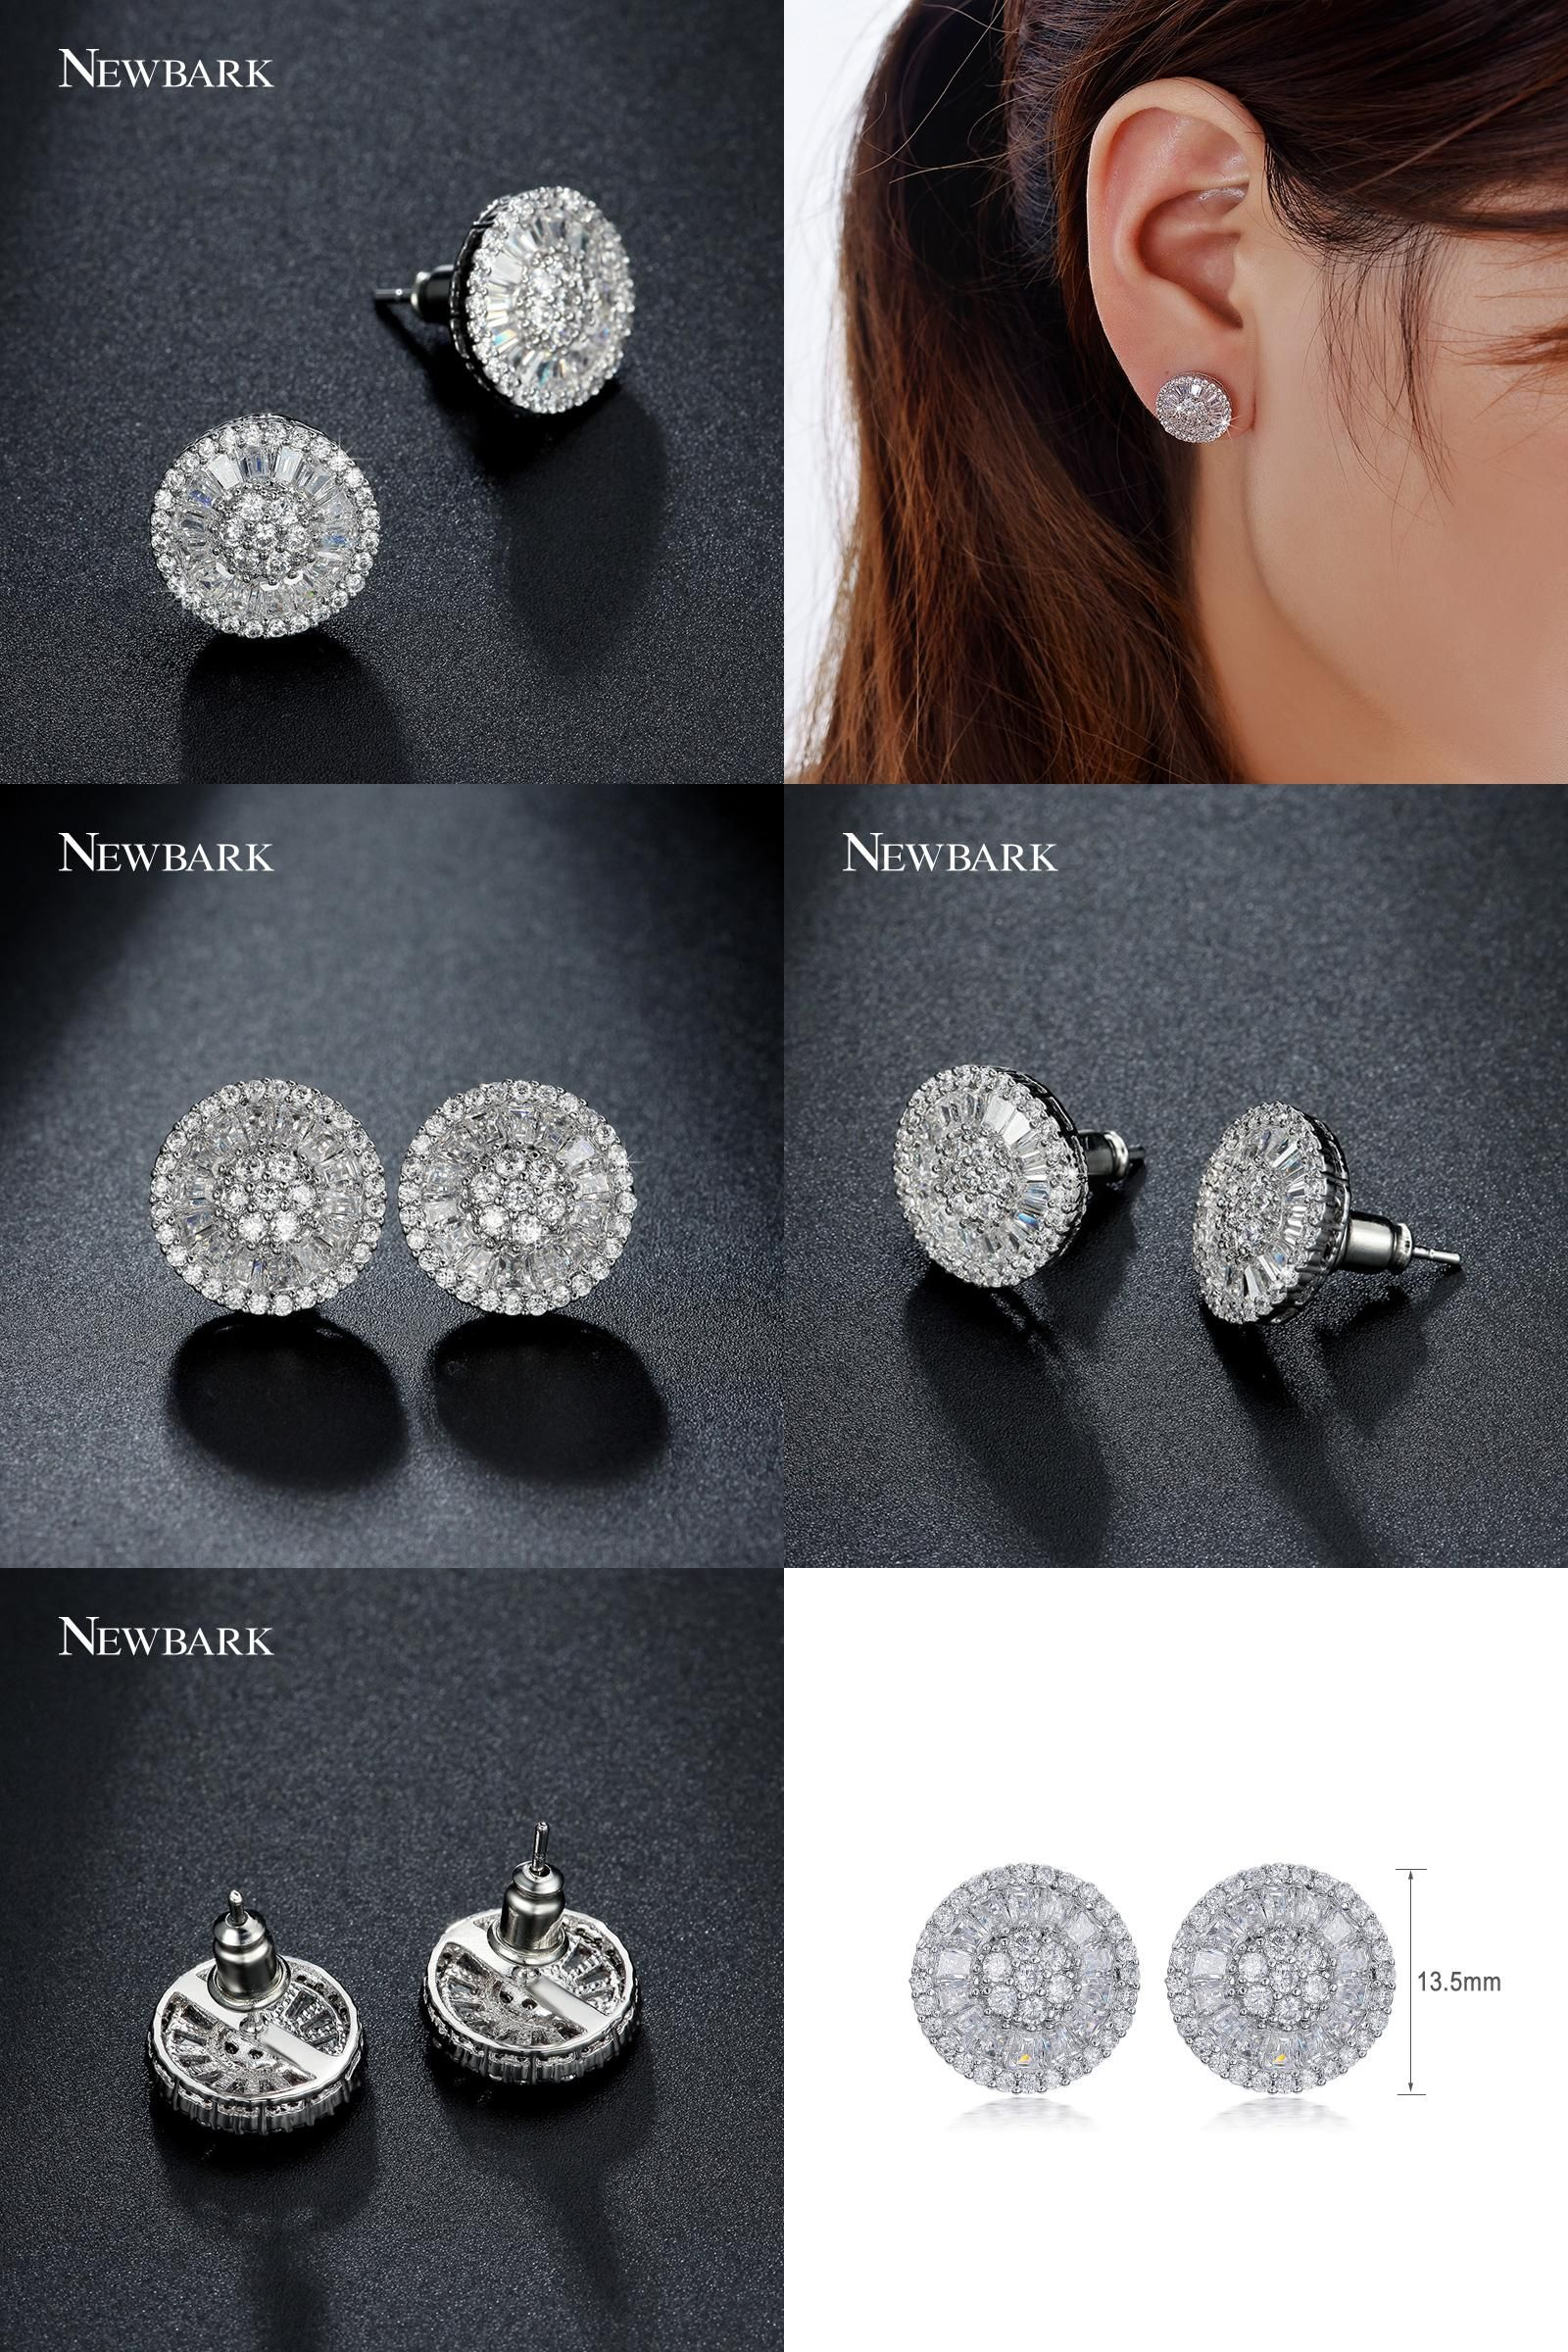 Visit to Buy  NEWBARK Round Stud Earrings For Women Luxury Top Clear  Zirconia Paved d4bb84a34285